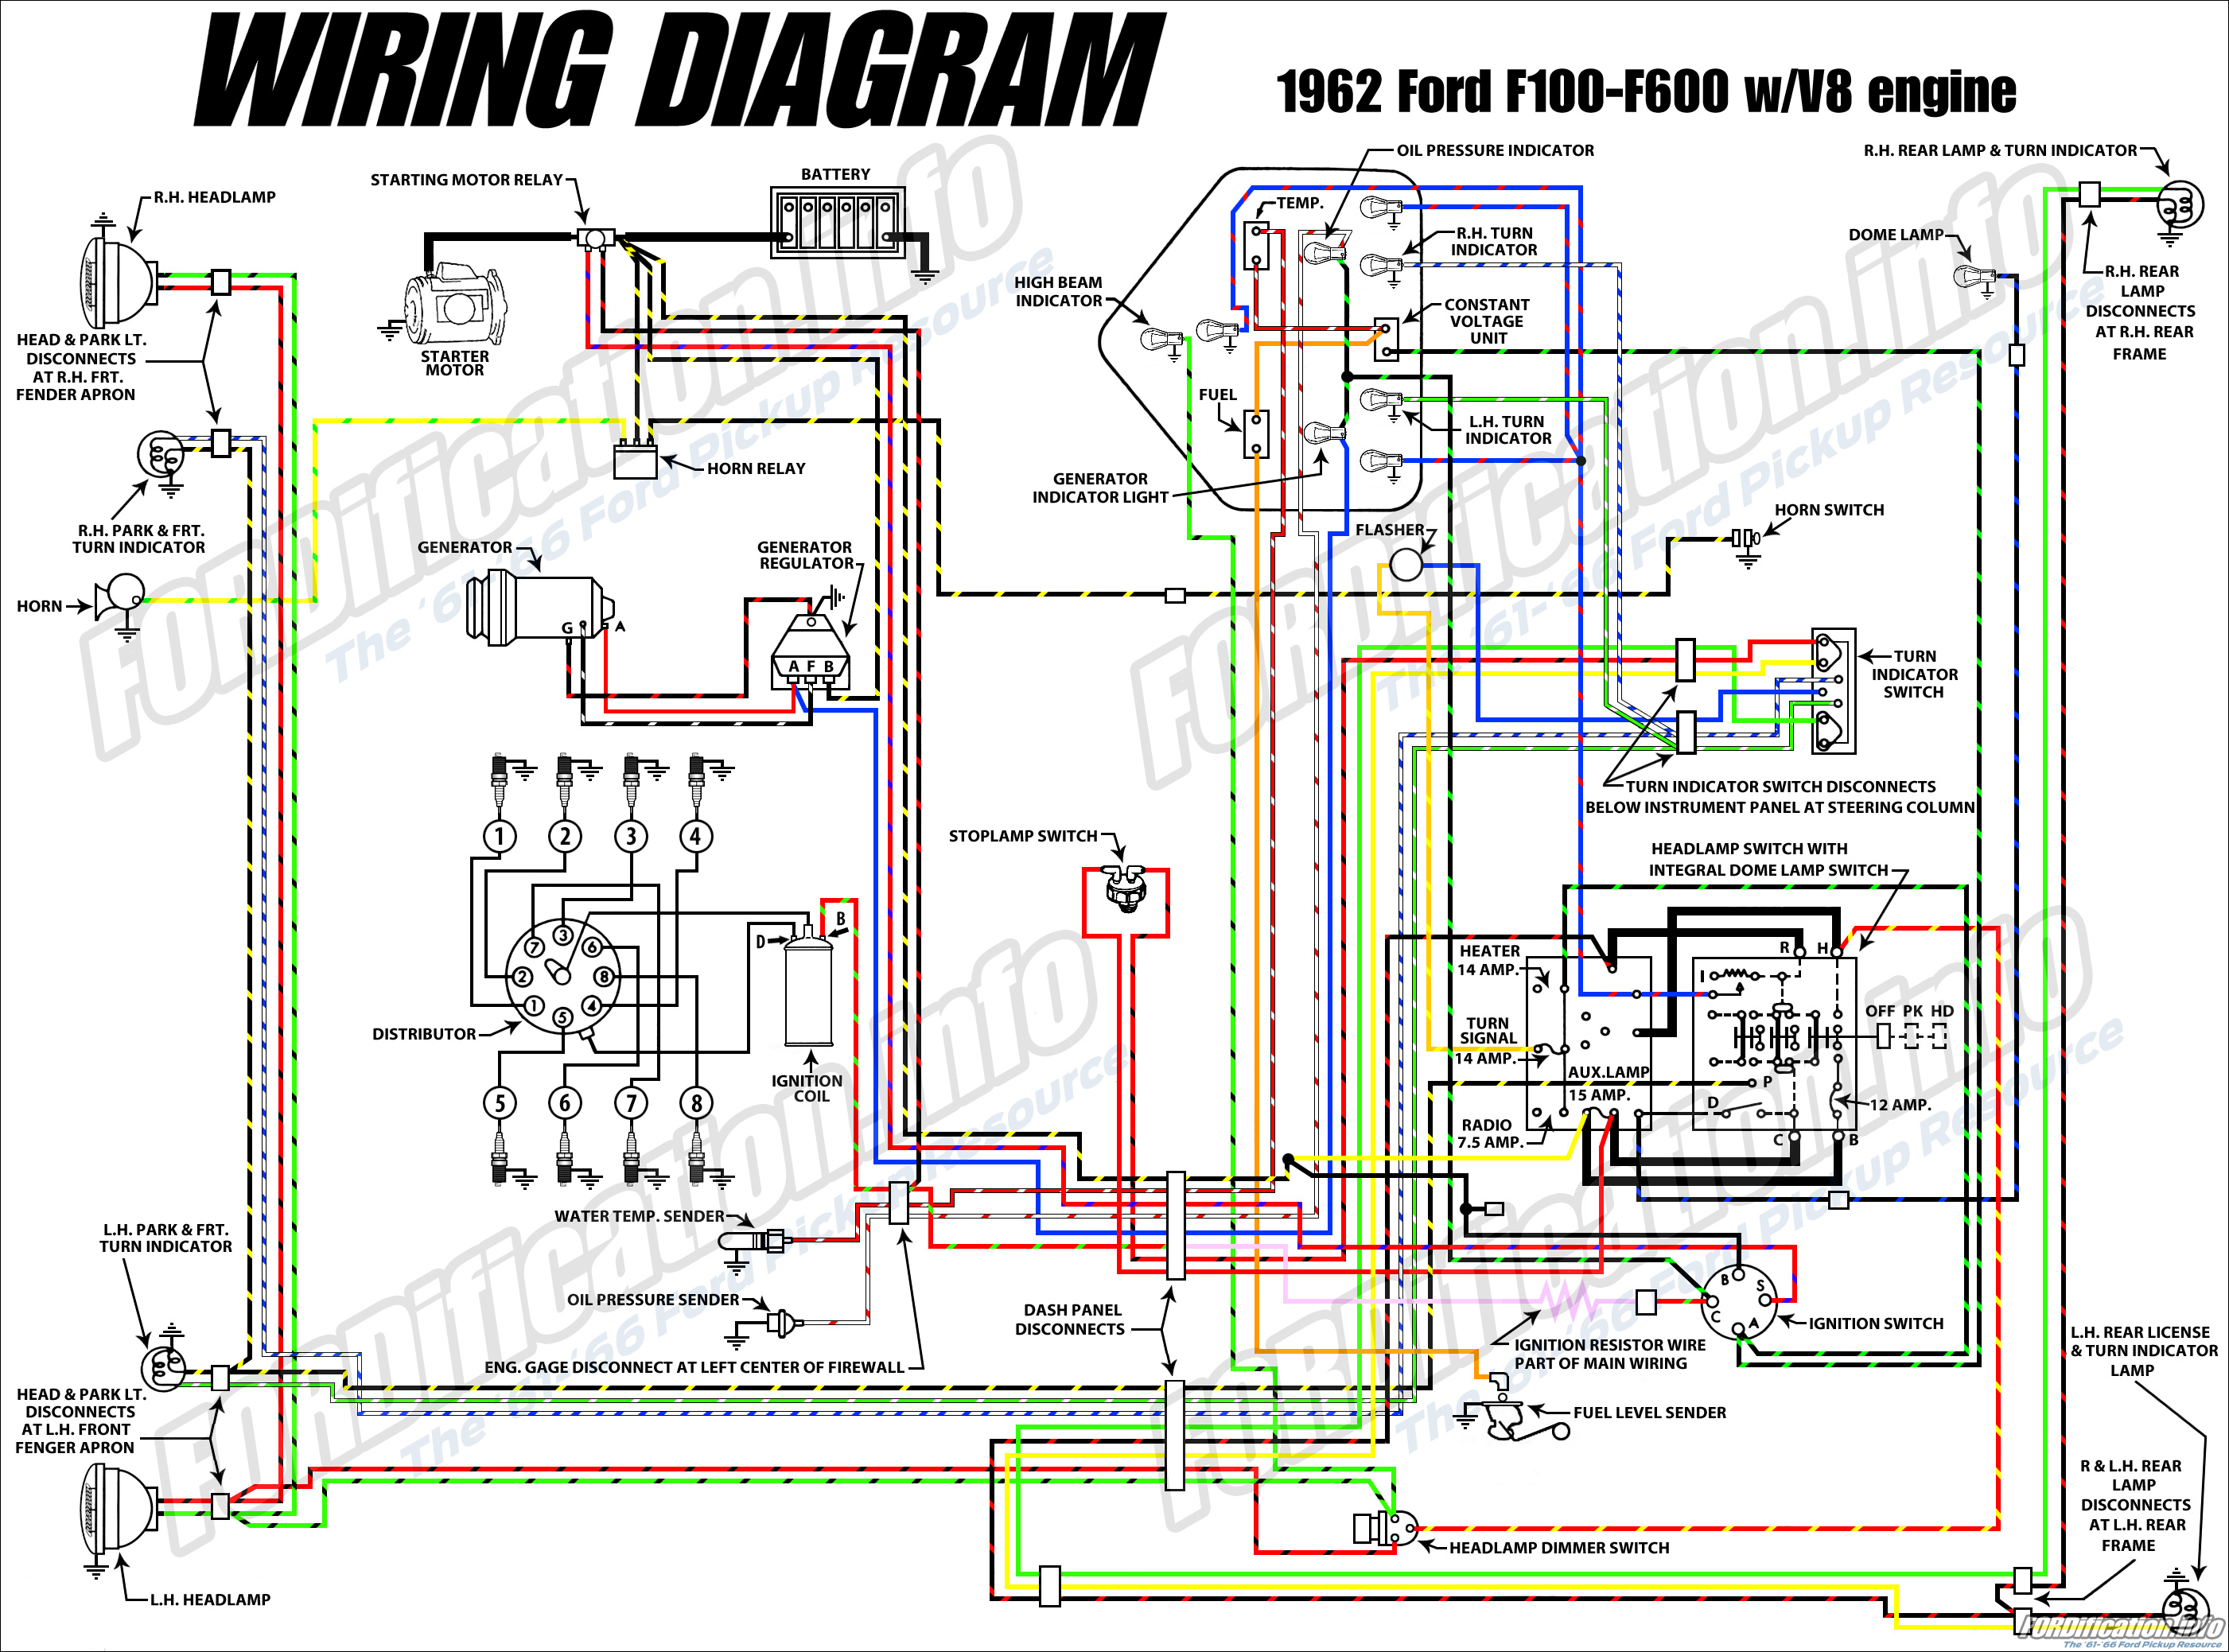 1962fordtruck_masterwiring 1962 ford truck wiring diagrams fordification info the '61 '66 1961 ford truck wiring diagram at gsmportal.co